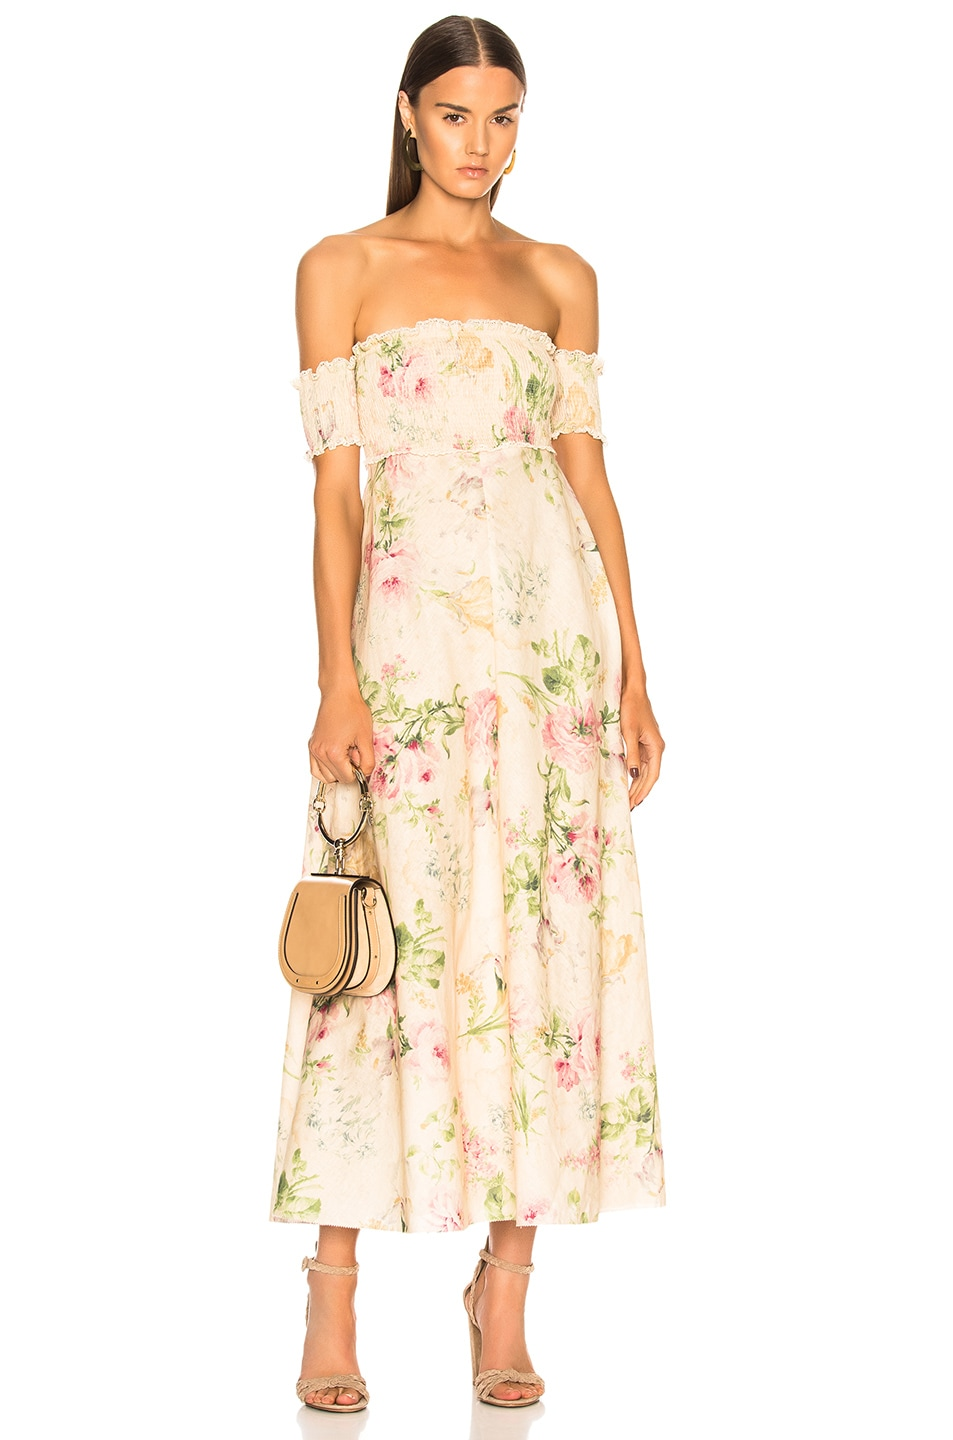 5845d7a44c1b Image 1 of Zimmermann Iris Shirred Bodice Maxi Dress in Cream Floral